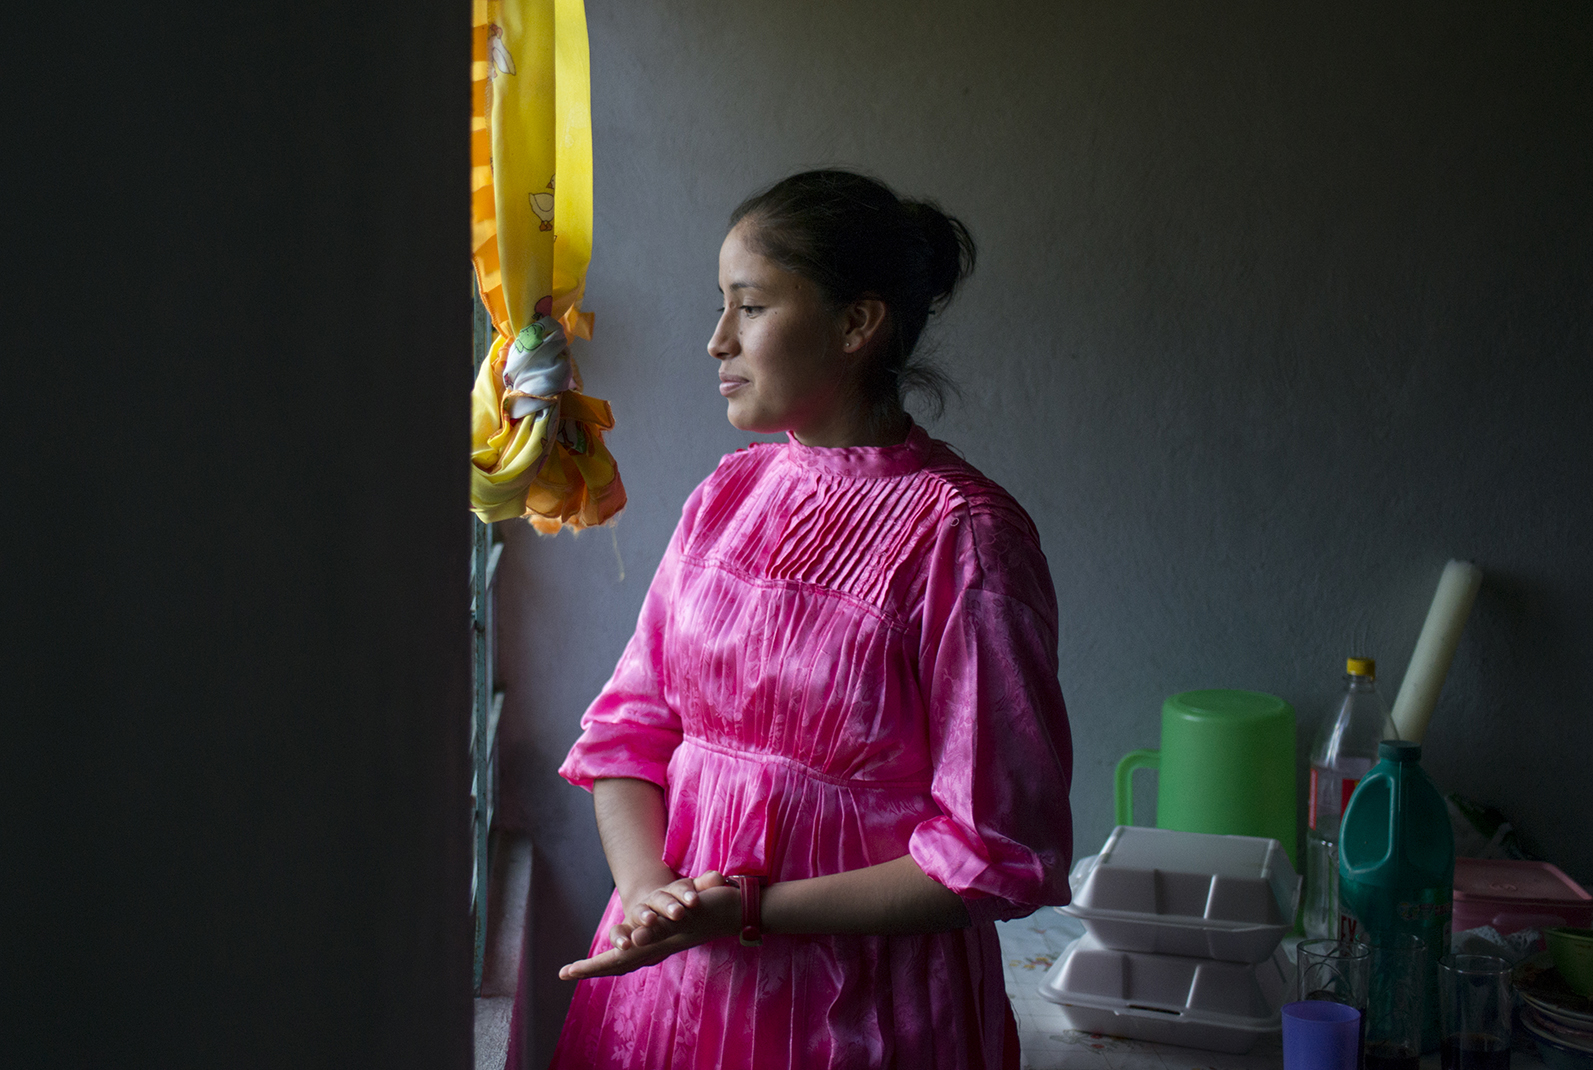 Portrait of Ana Karen Cruz Casiano 18 years old in the kitchen of her home in the Mazahua indigenous community near San Felipe del Progreso, in the Estado de mexico, Mexico